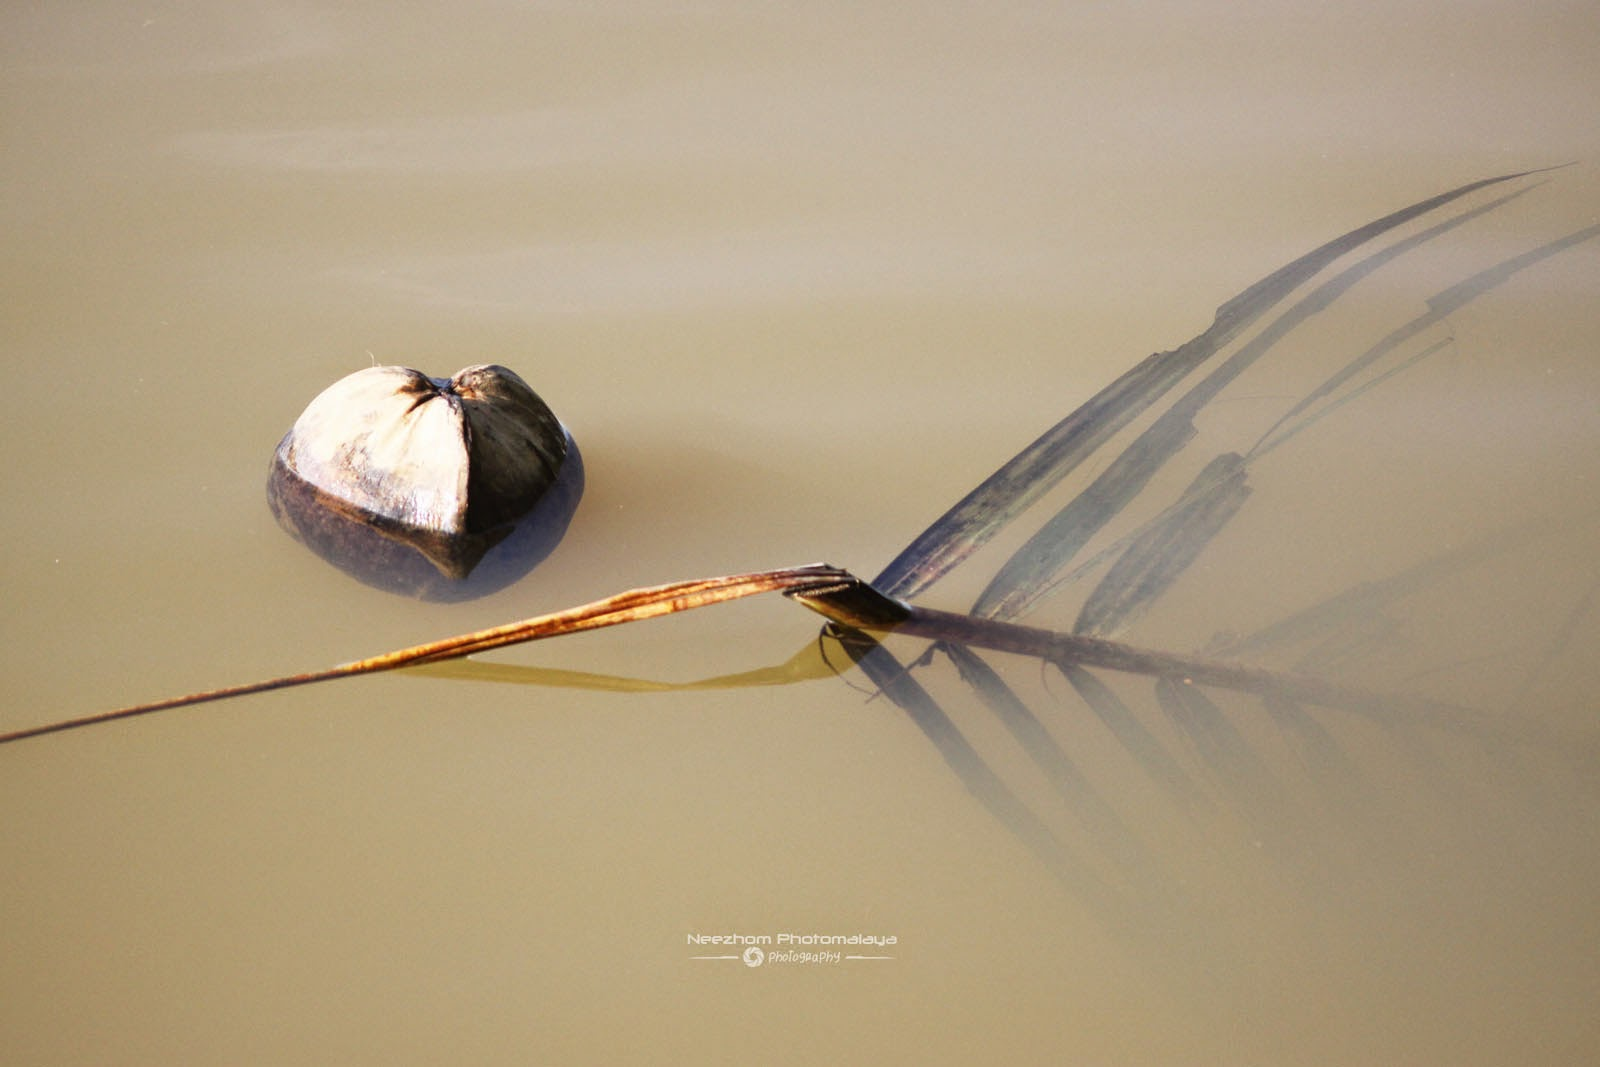 Coconut and its leaves adrift together